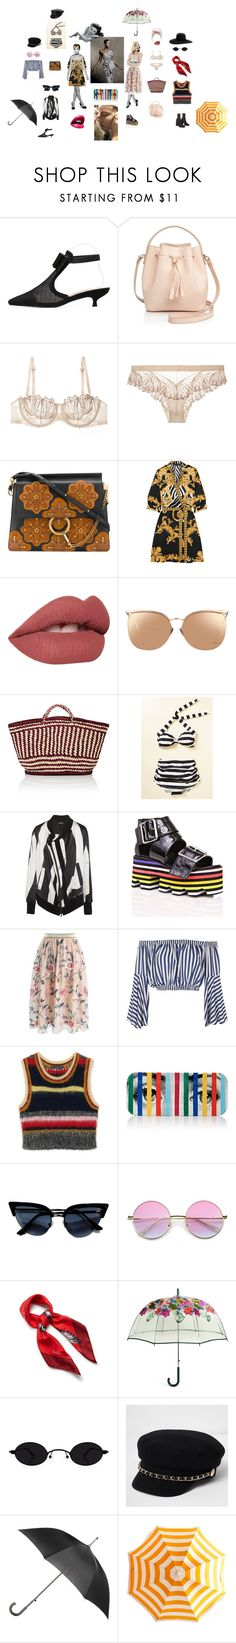 """Stripes strike a pose !"" by peipoufanm ❤ liked on Polyvore featuring Céline Lefébure, Triumph, Chloé, Versace, Lime Crime, Linda Farrow, Soeur, Esther Williams, Ann Demeulemeester and Current Mood"